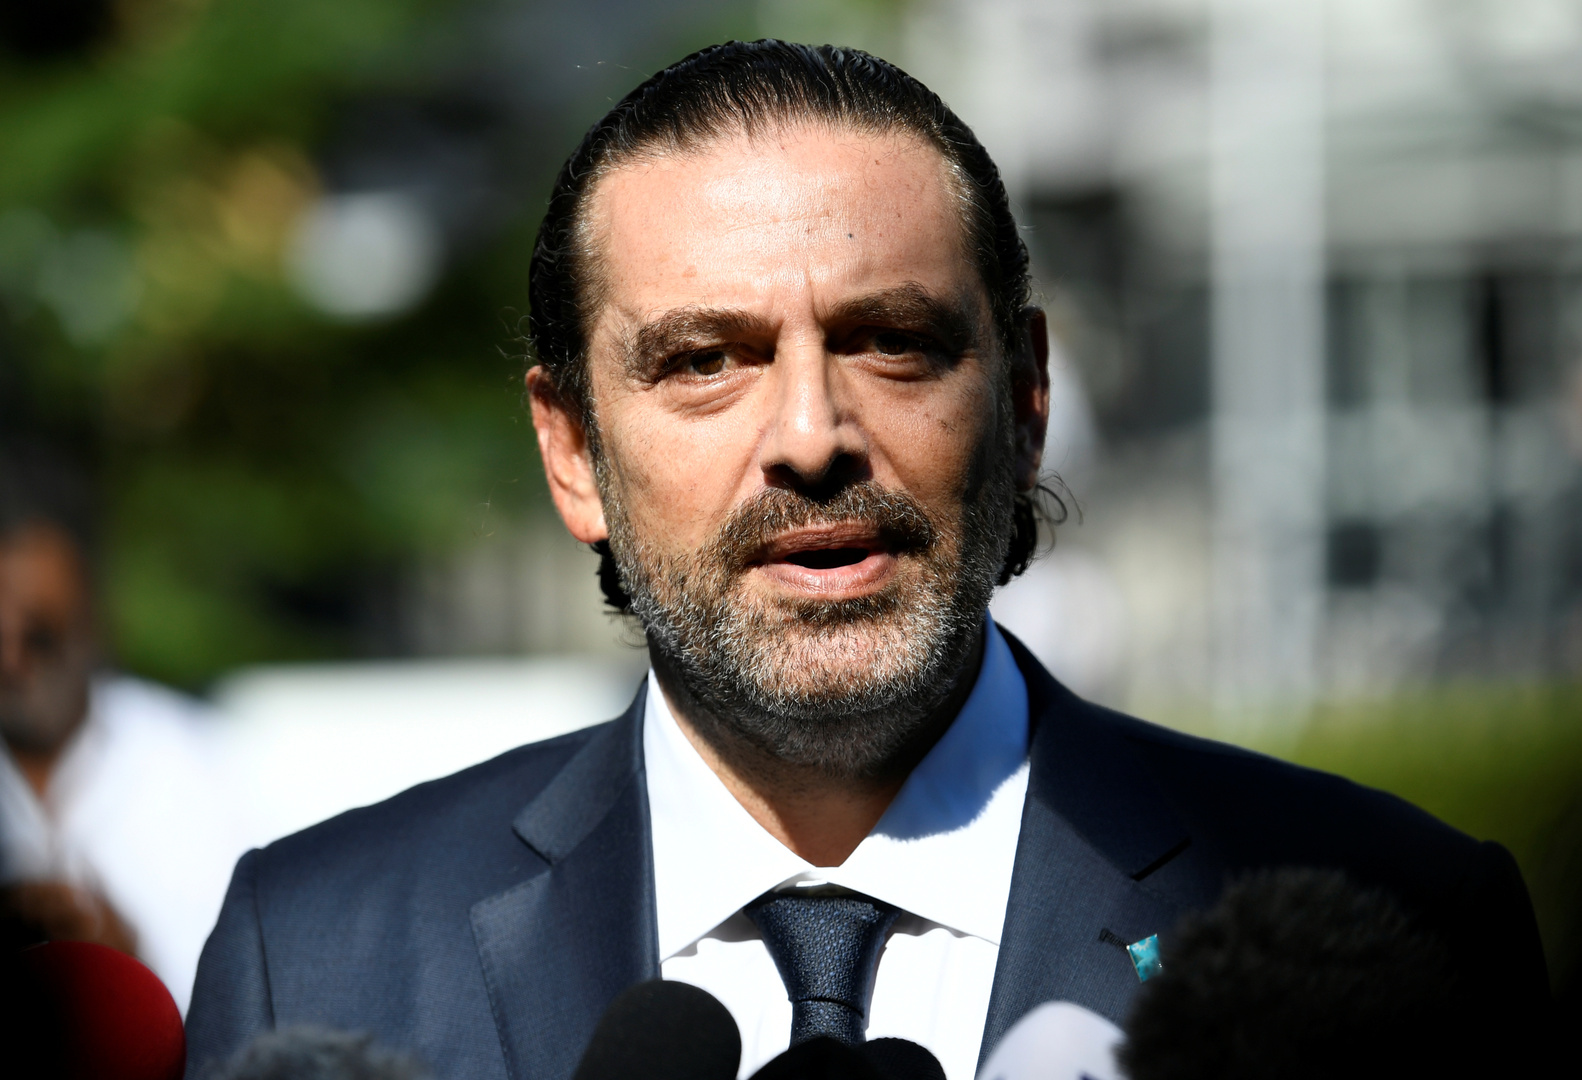 Lebanese media: Hariri is in Turkey with an Arab assignment to open the doors of mediation between Ankara and Riyadh